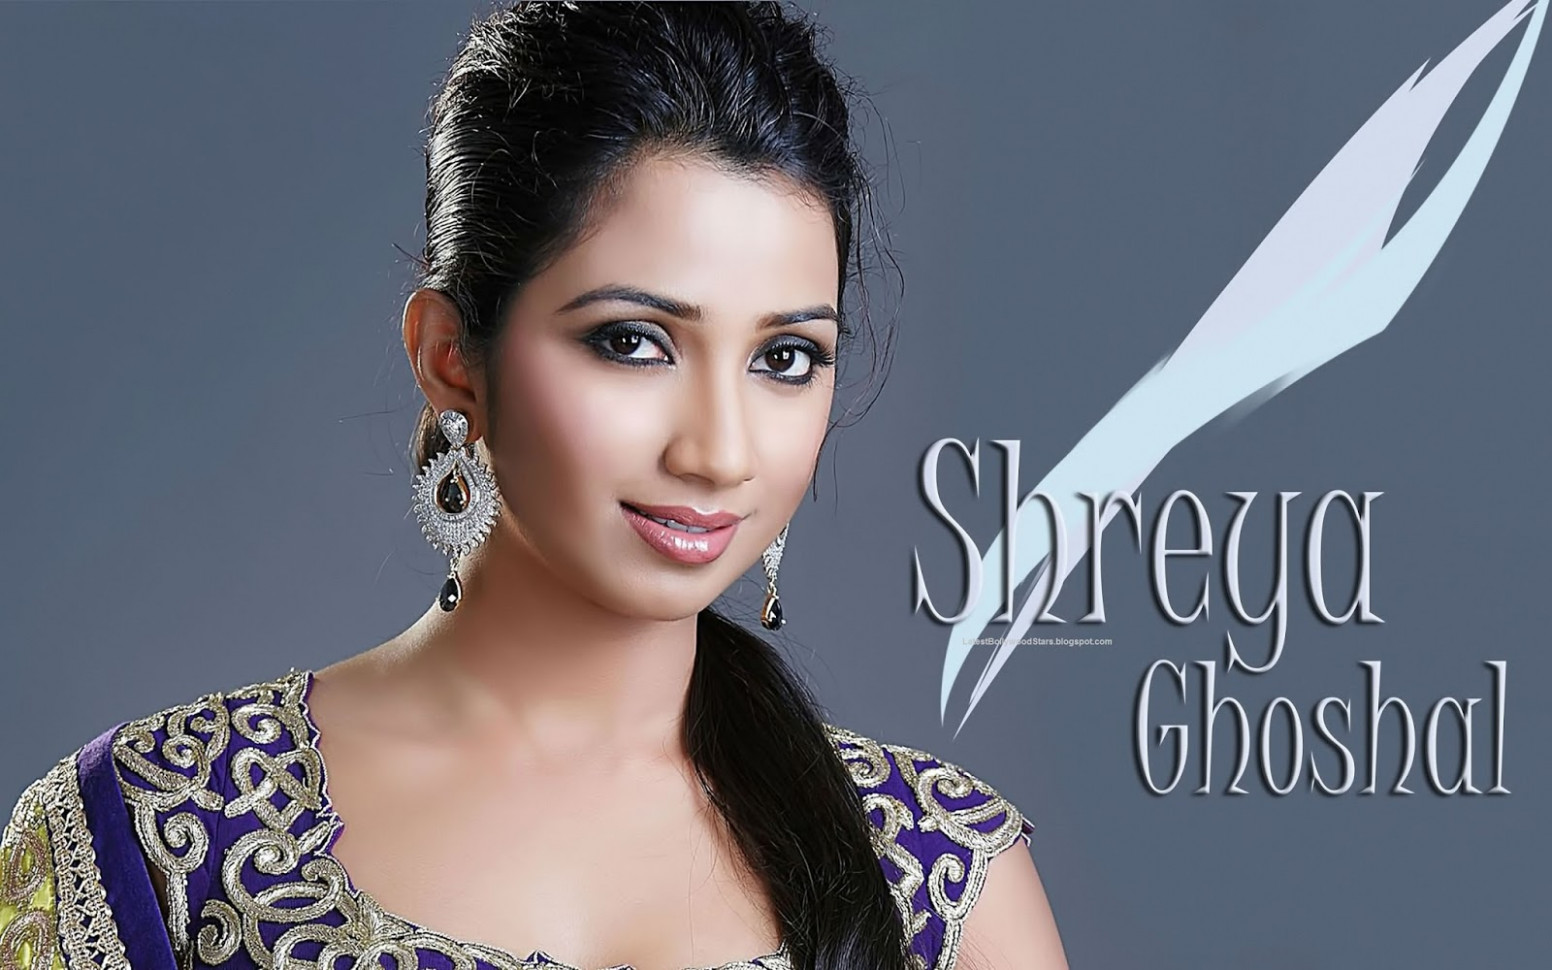 Beautiful Singer Shreya Ghoshal HD Photos & Wallpapers ...